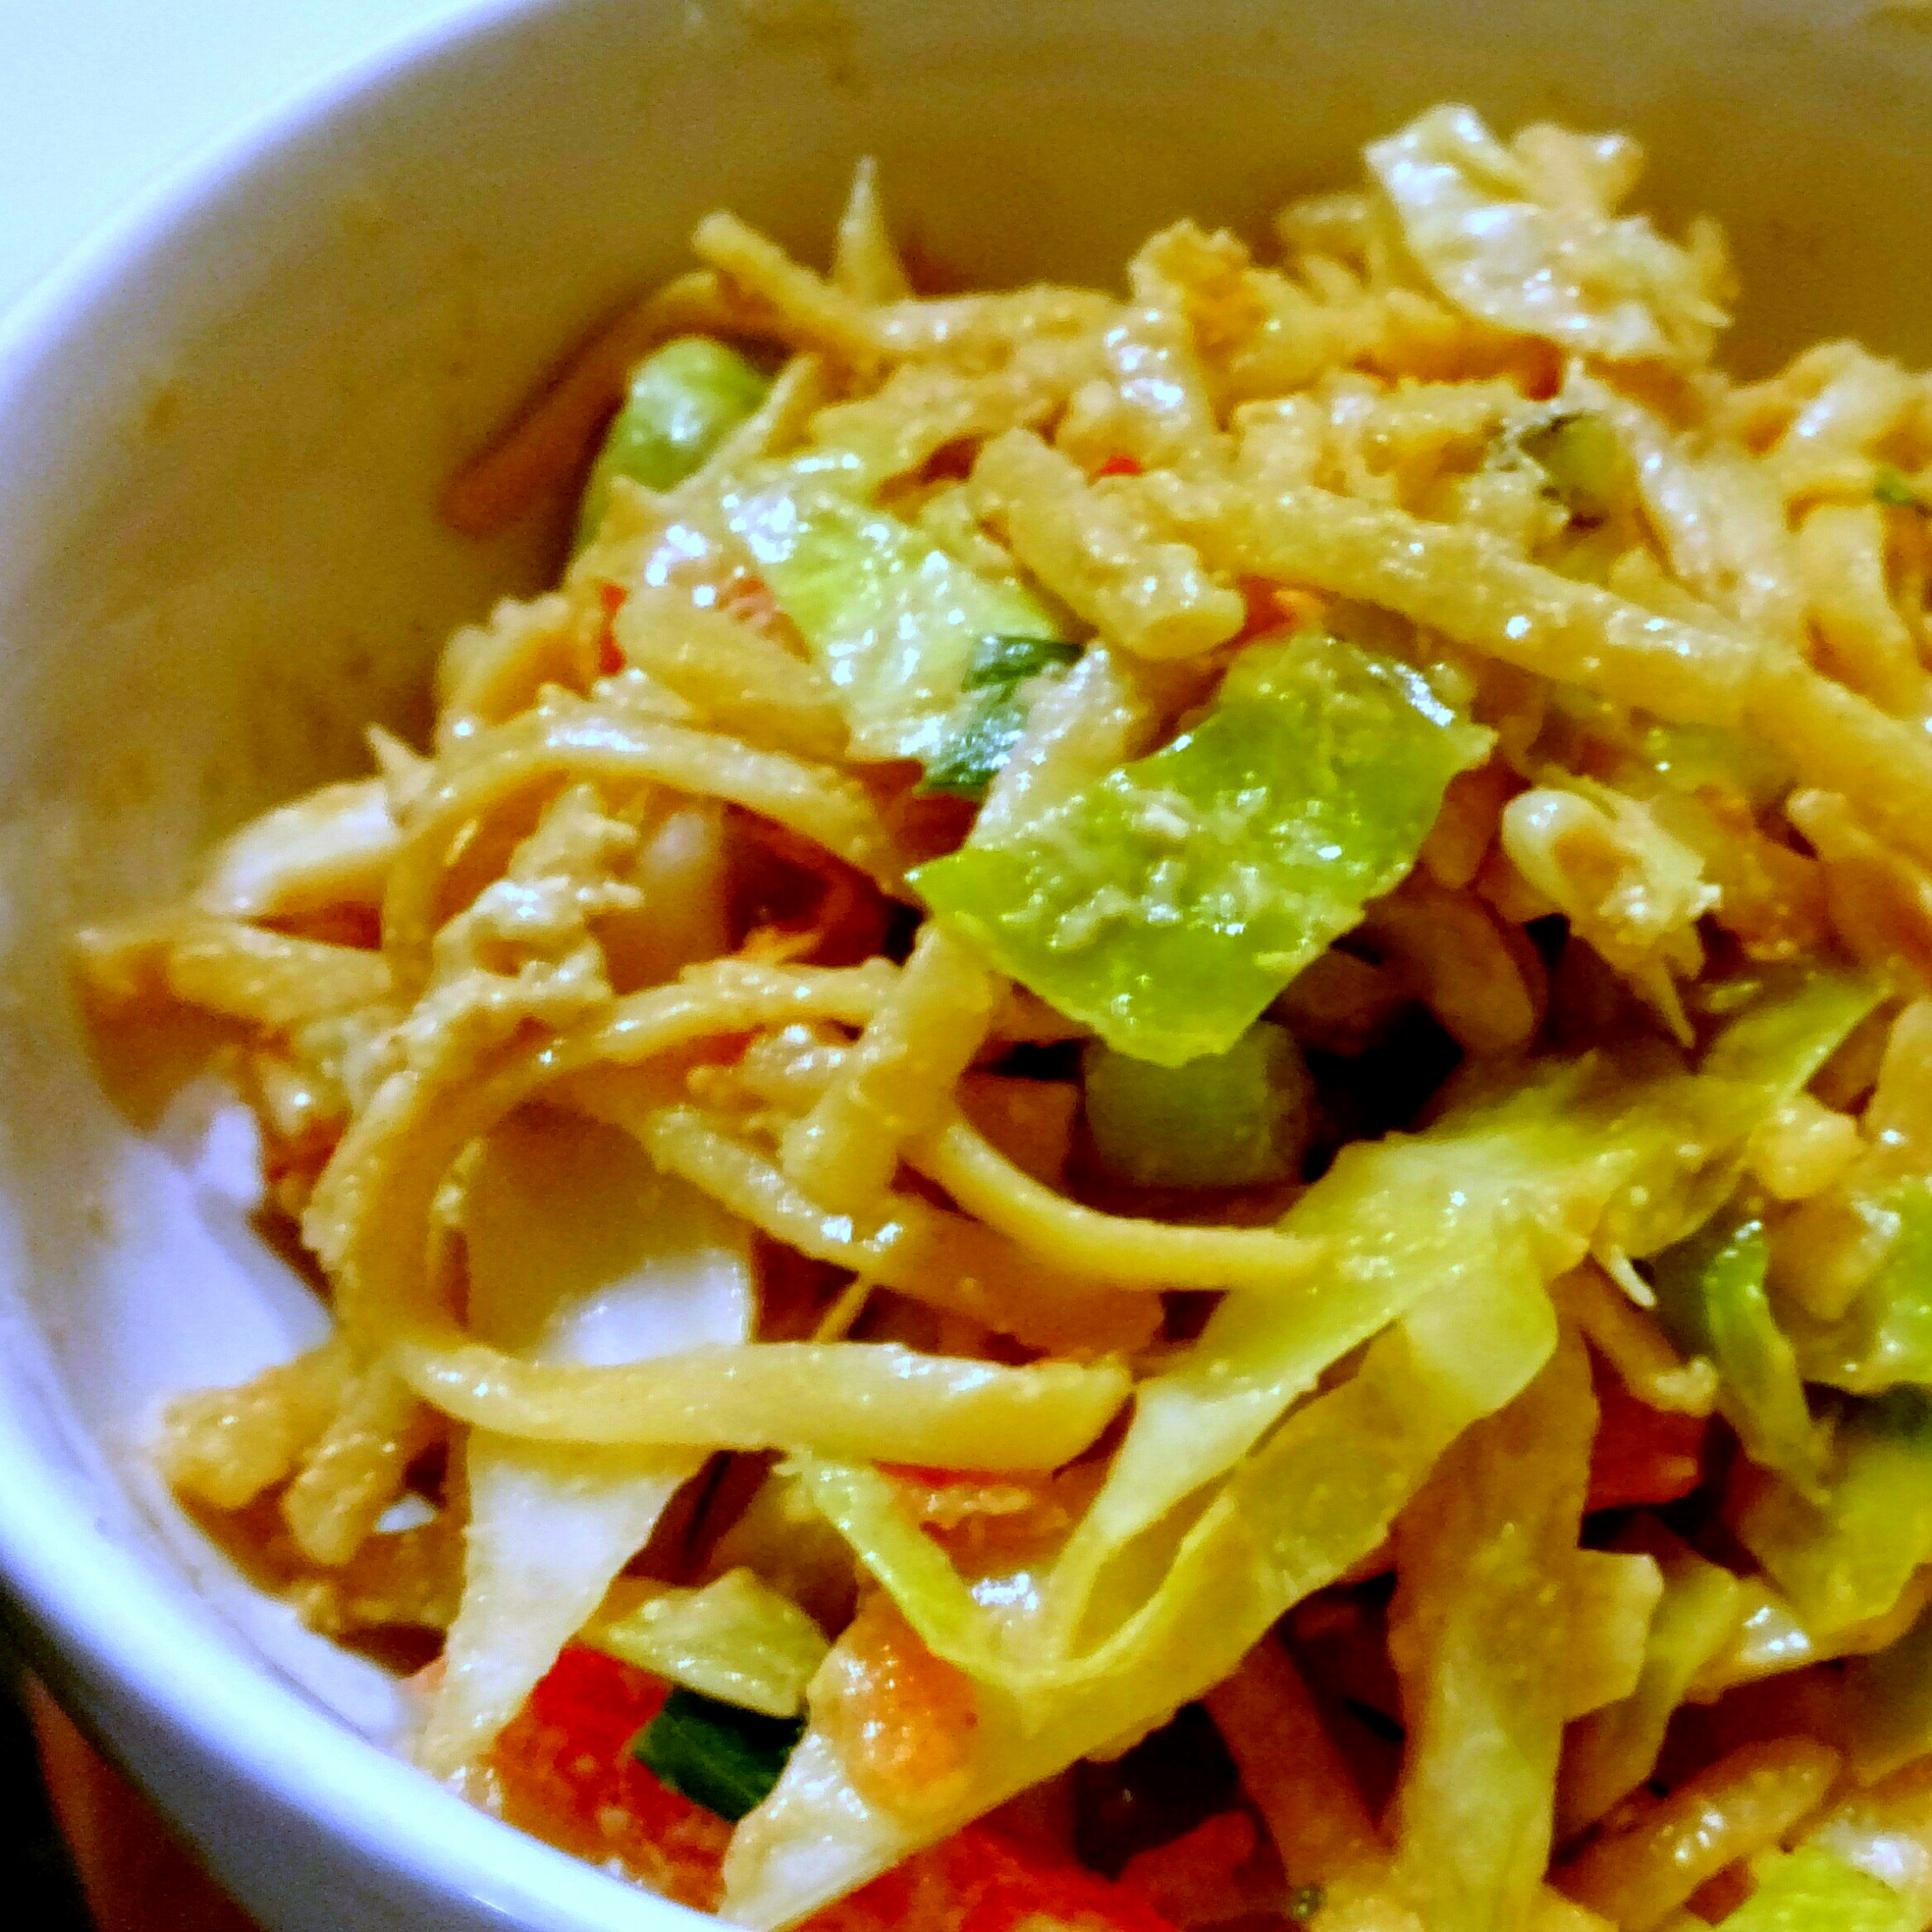 Vegan Asian Noodle Salad with Spicy Peanut Butter Dressing